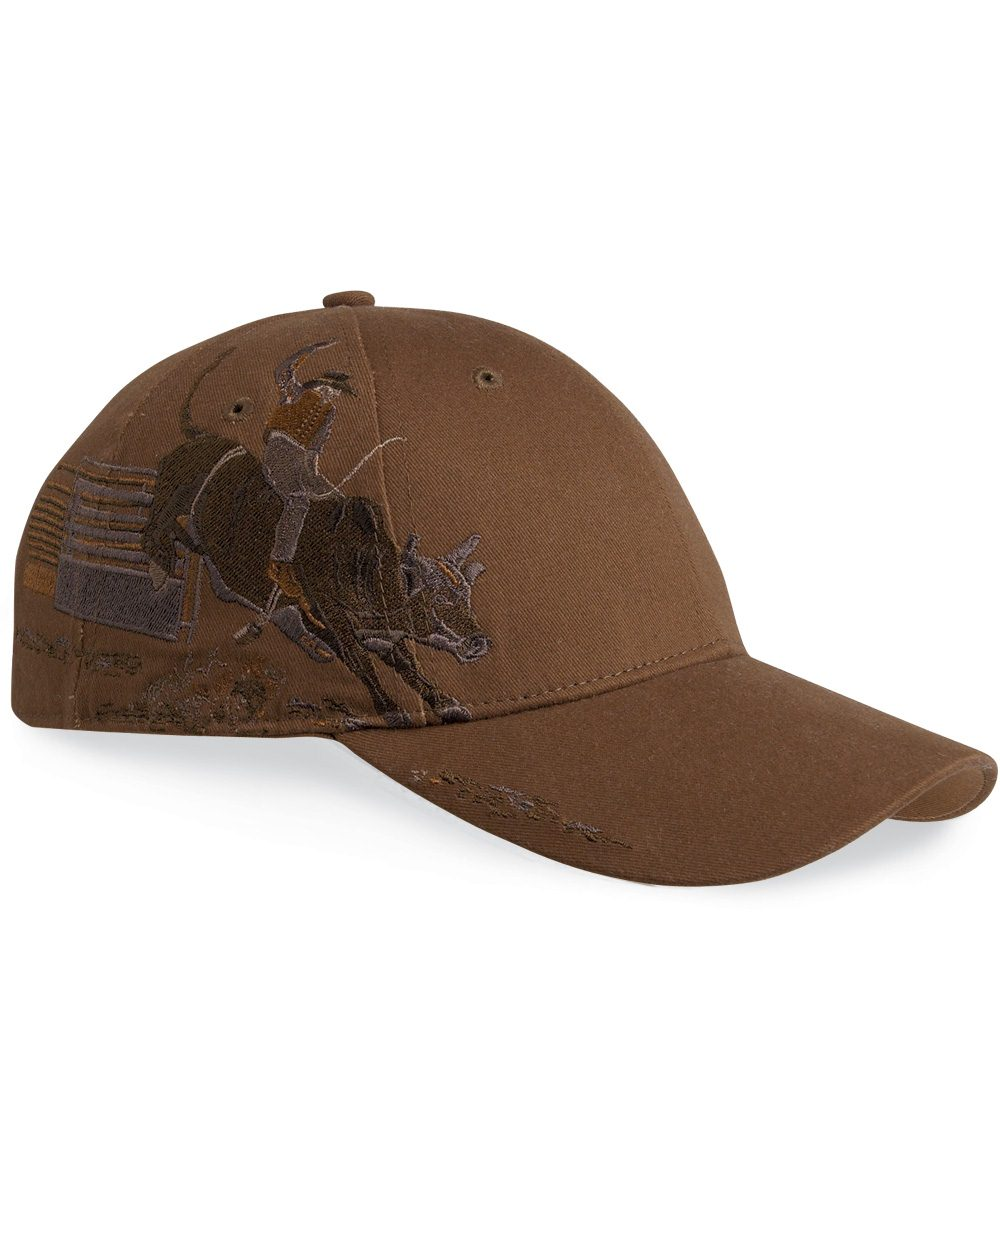 DRI DUCK Wildlife Series Bull Rider Cap - 3262